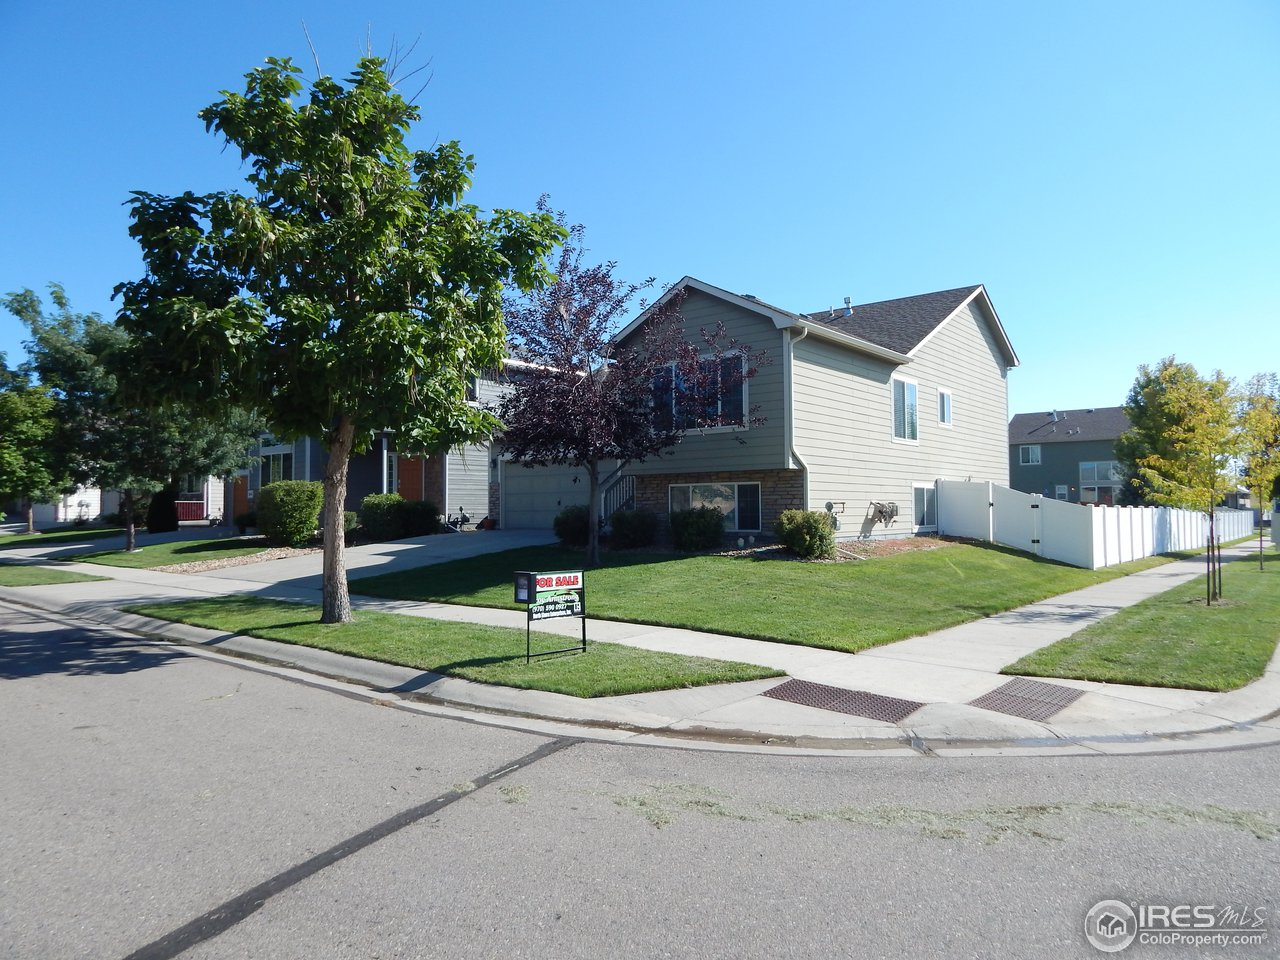 2602 Ashland Ln, Fort Collins, Fort Collins, CO 80524